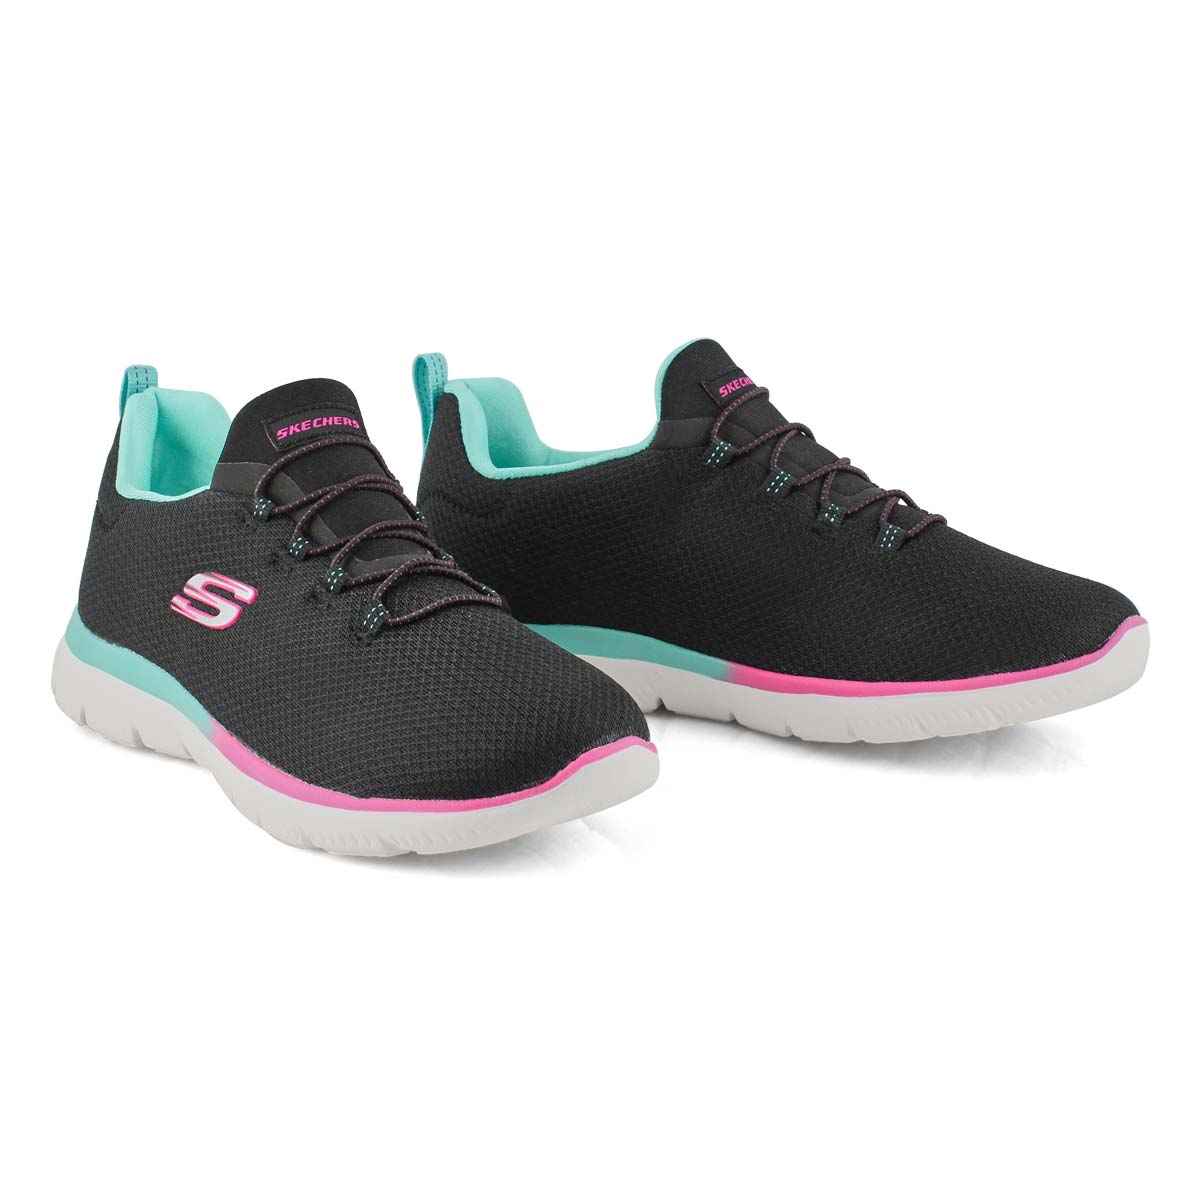 Women's Summits Sneaker - Black/Blue/Pink